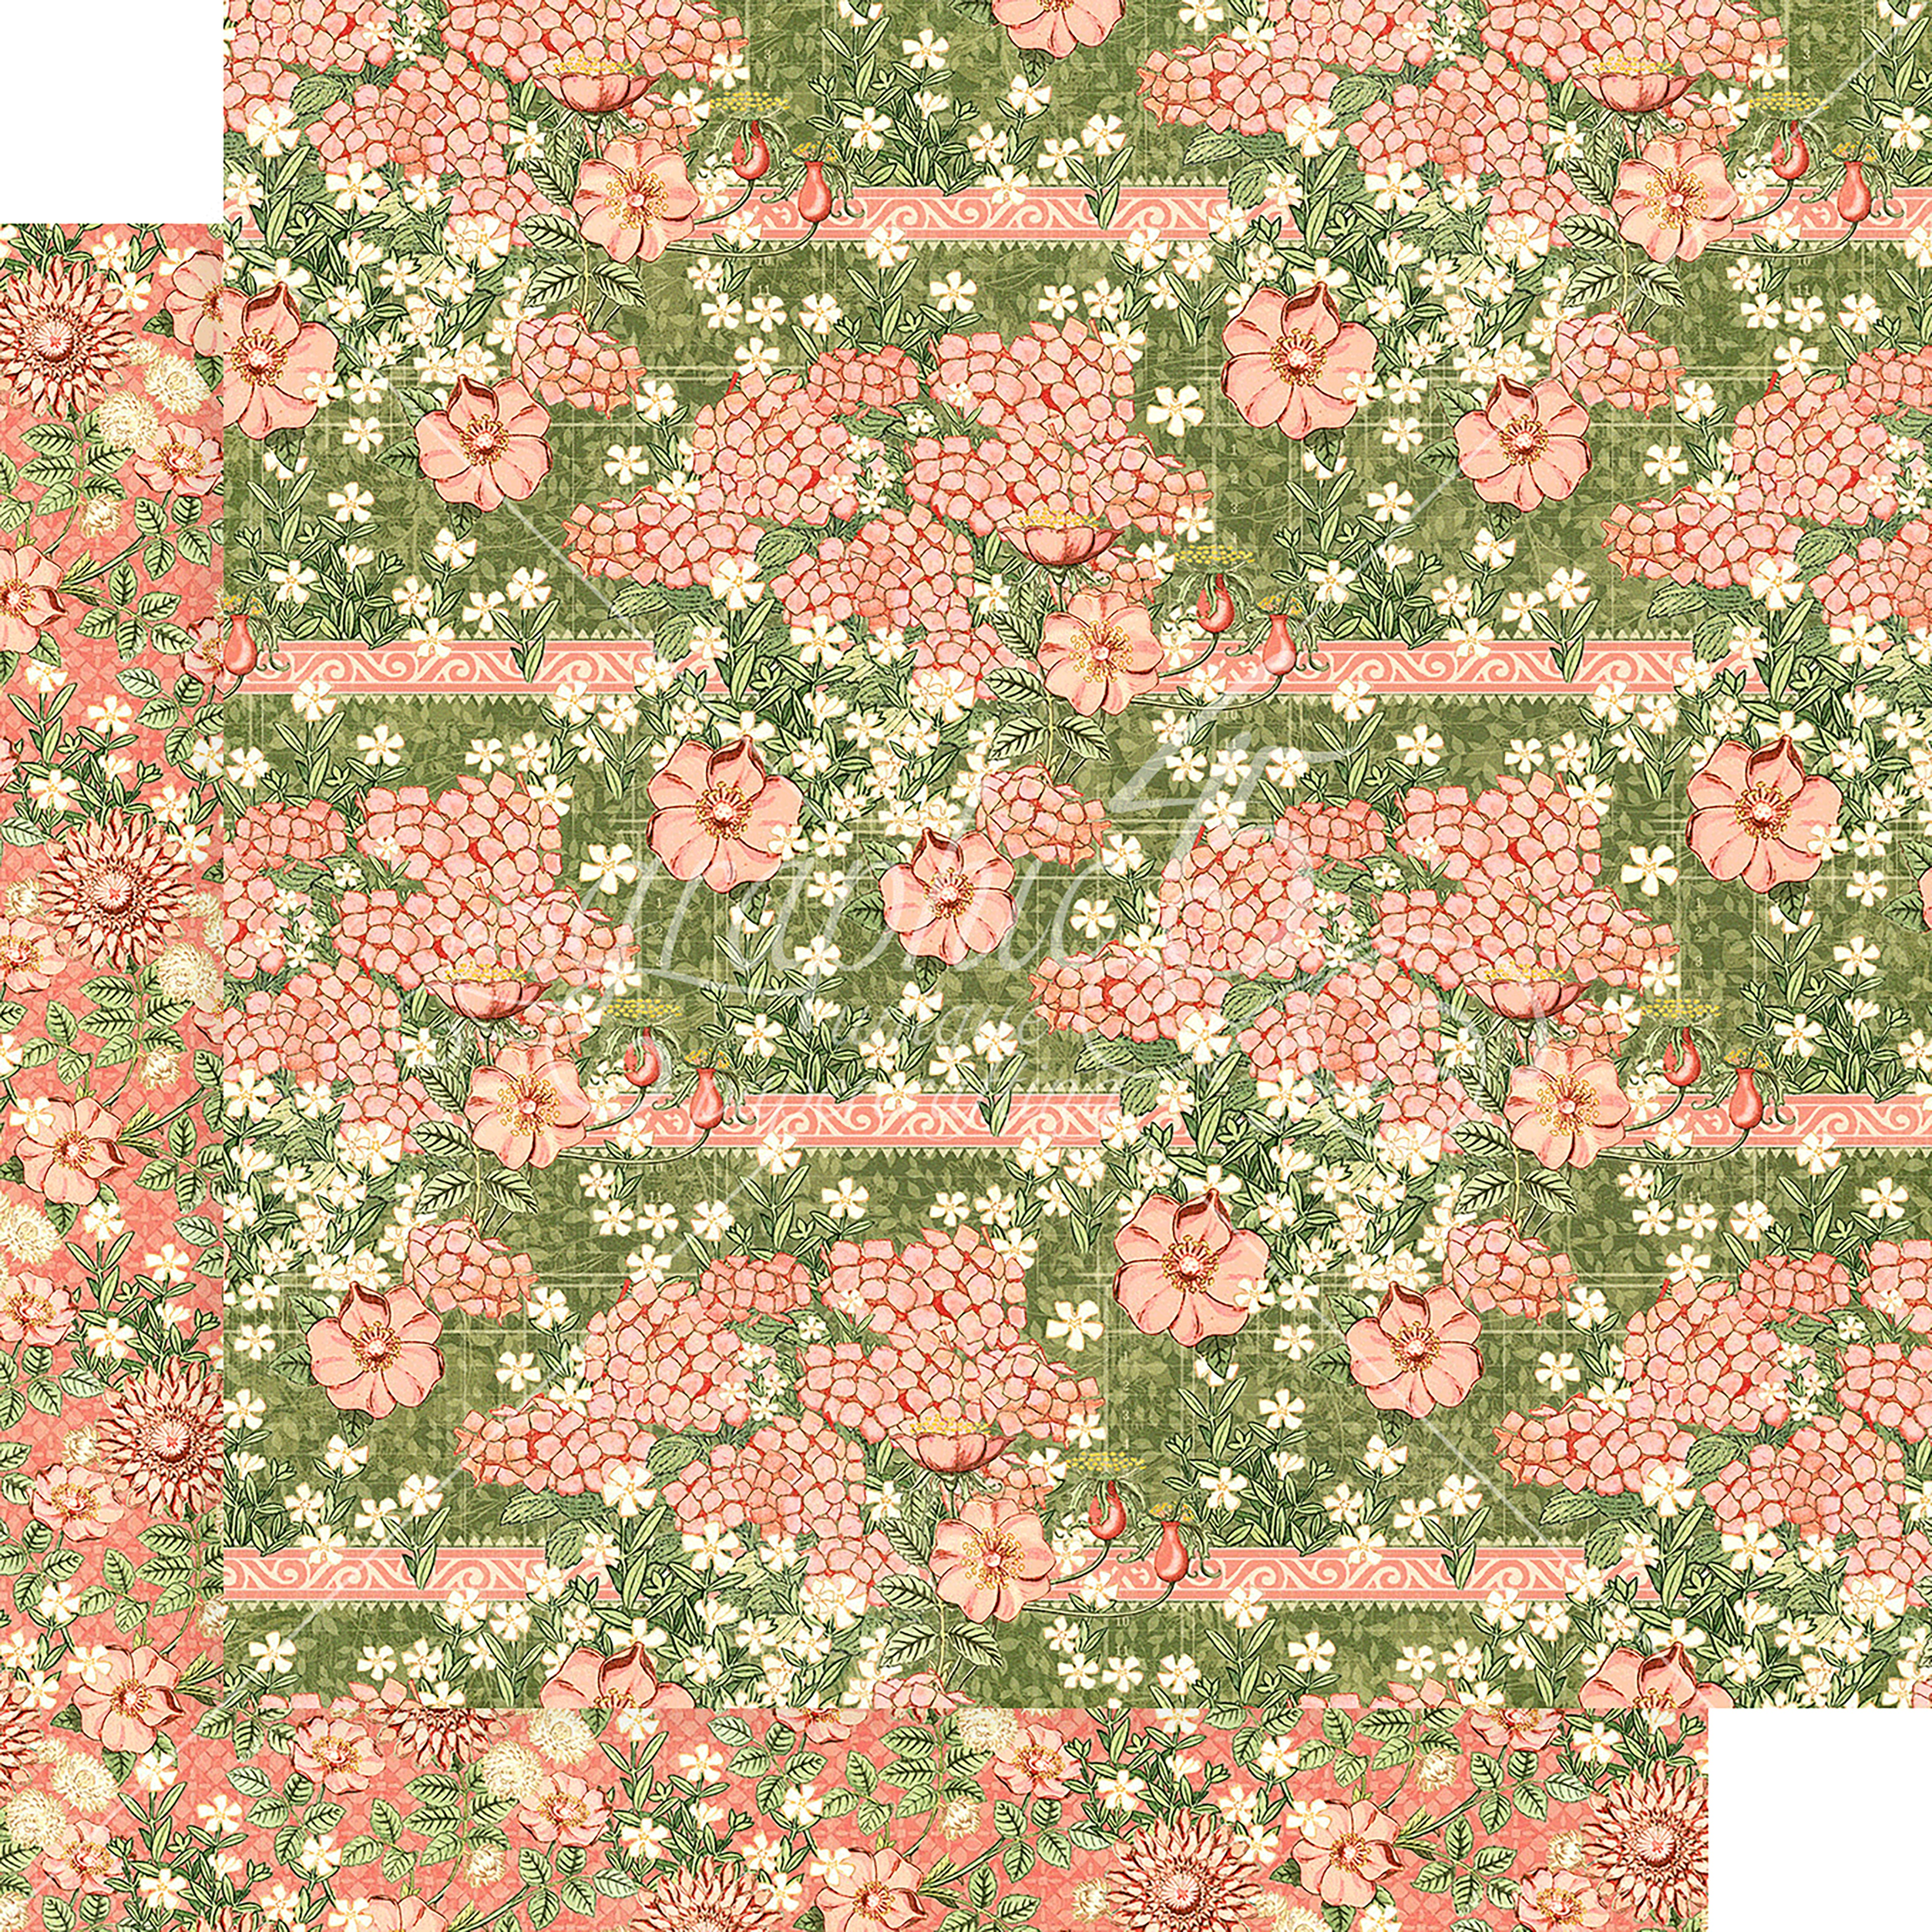 Garden Goddess - Fields of Flowers - 12x12 Double-Sided Cardstock (Graphic 45)